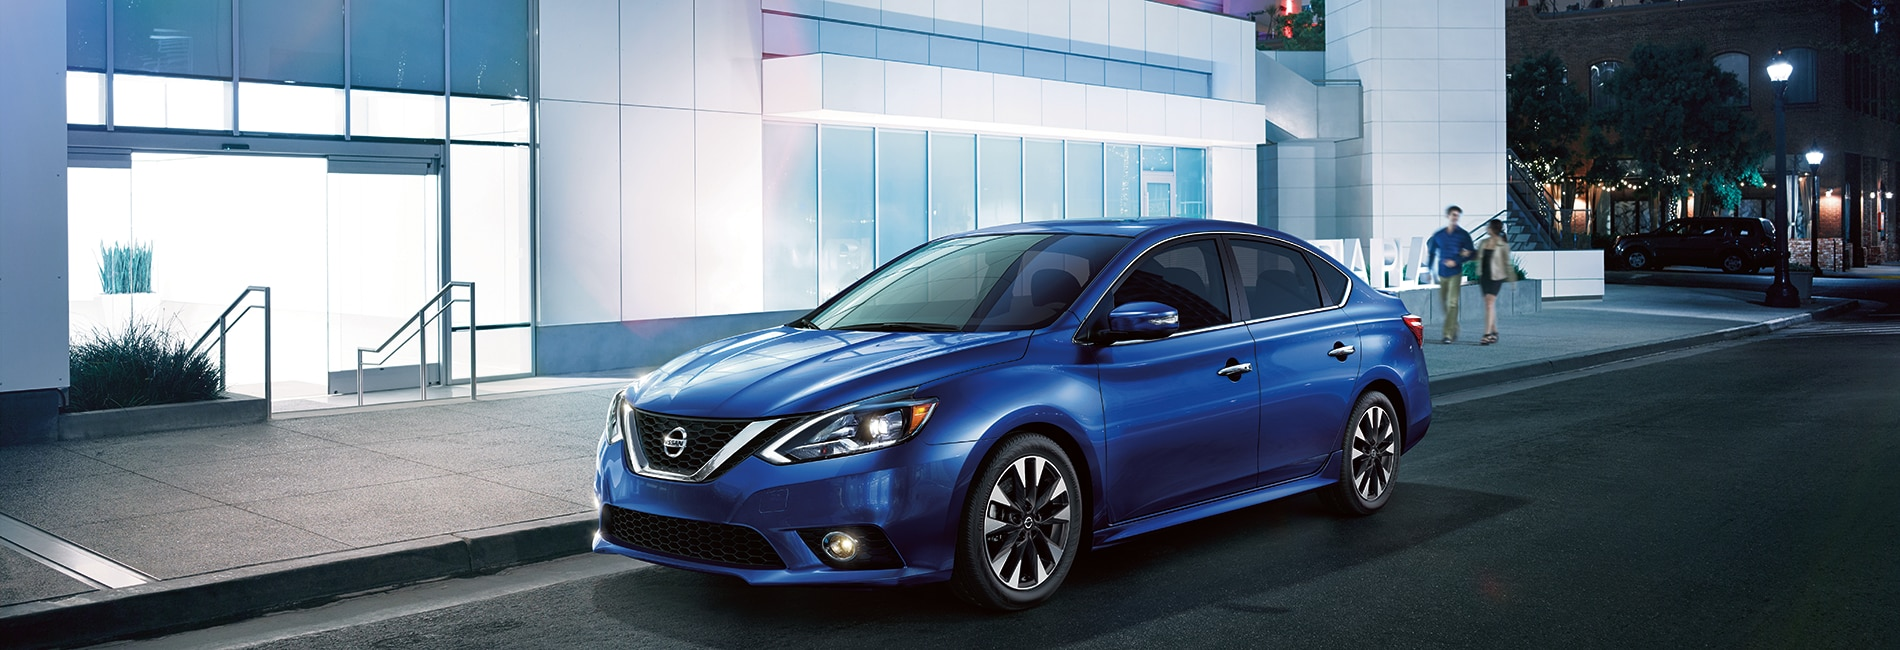 Nissan Sentra Exterior Vehicle Features